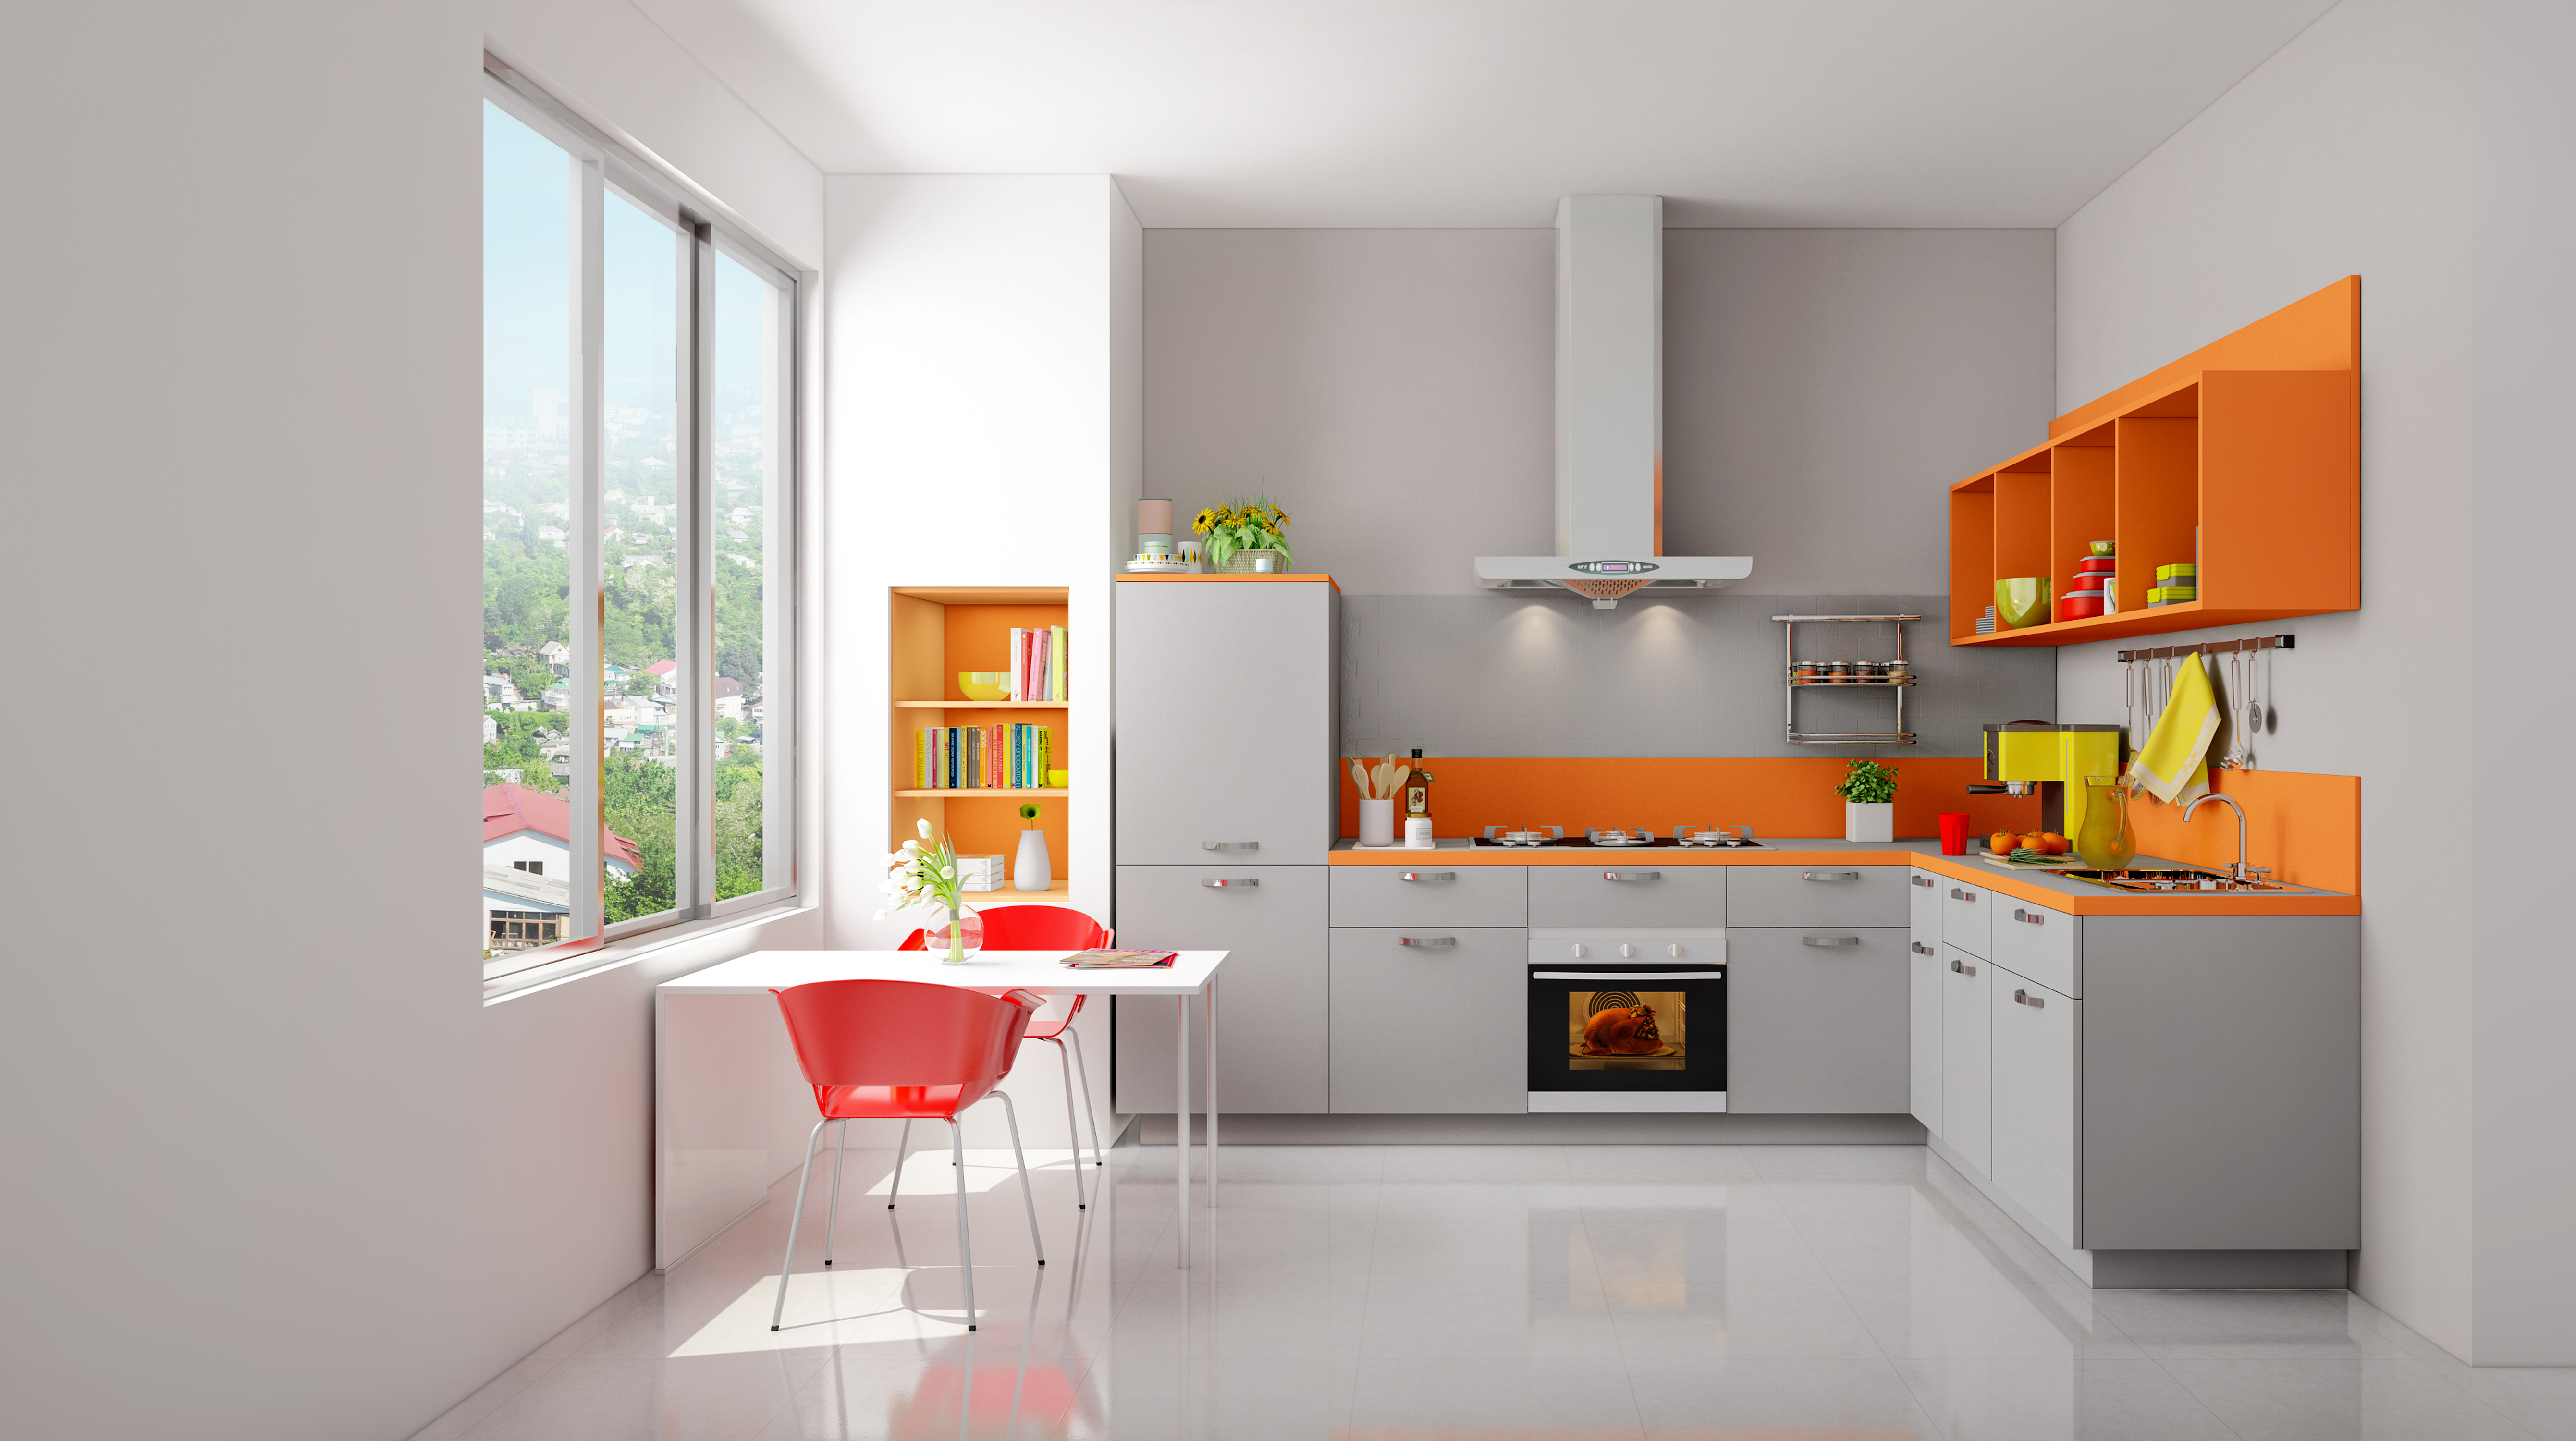 How To Turn Your Kitchen Into a Comfortable Space? - Kutchina